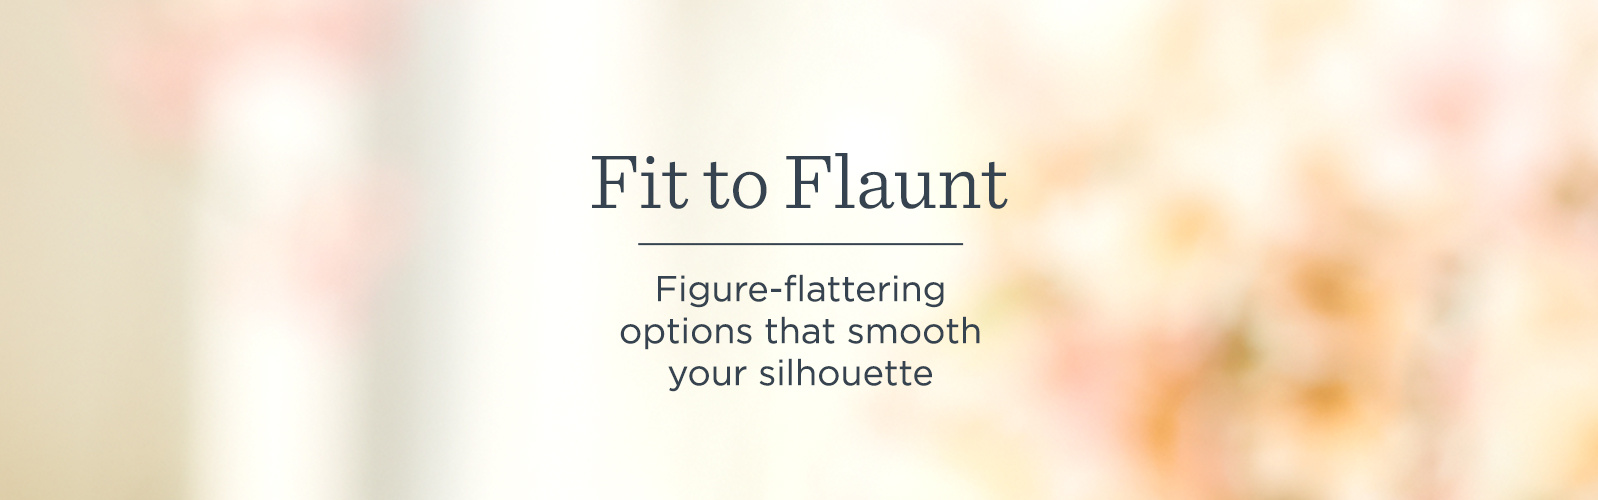 Fit to Flaunt. Figure-flattering options that smooth your silhouette.